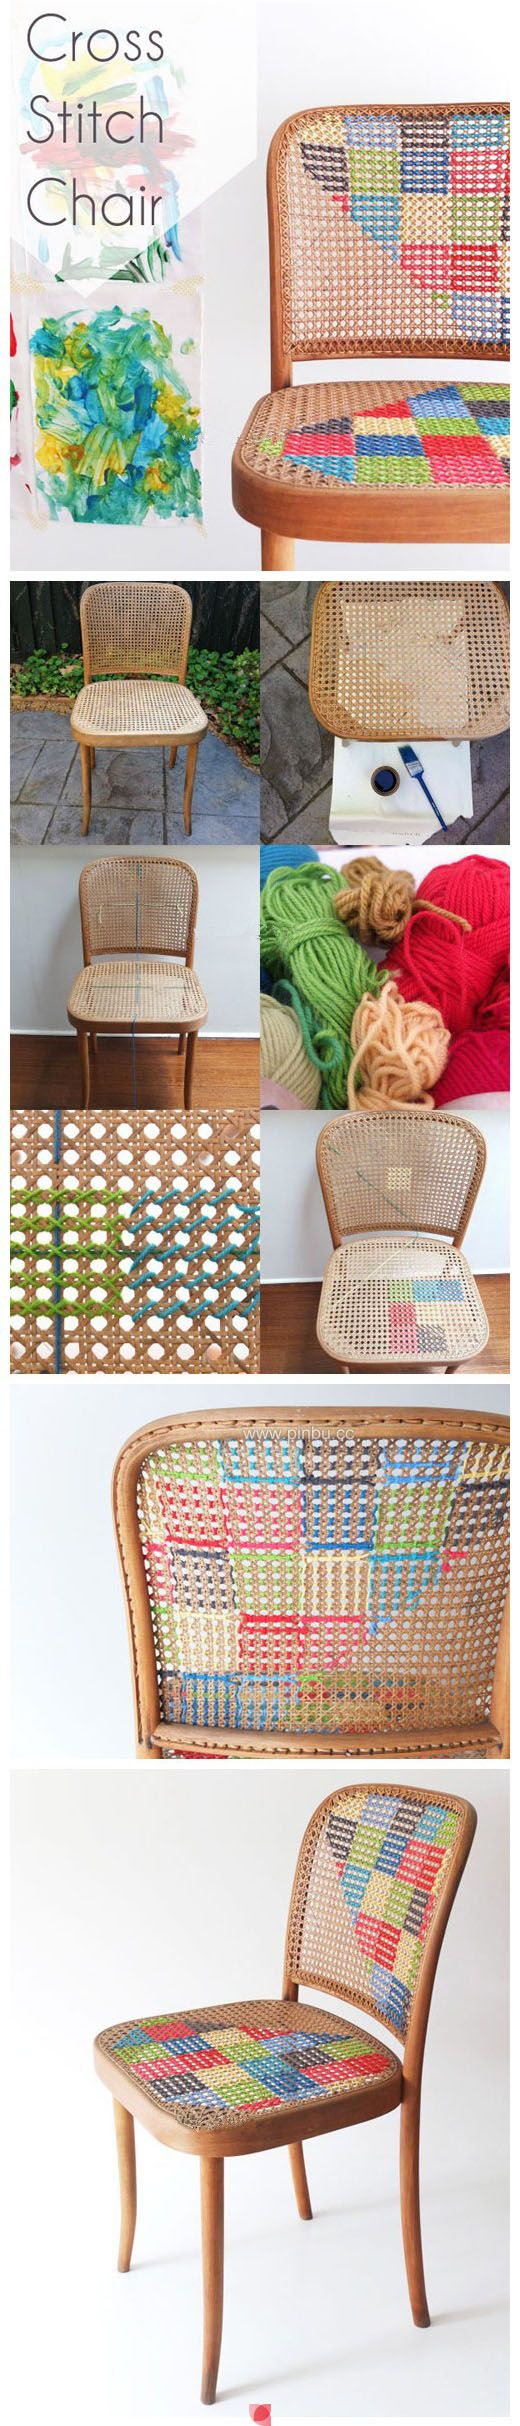 cross stitch chair ~ have to start looking for chairs like this!: